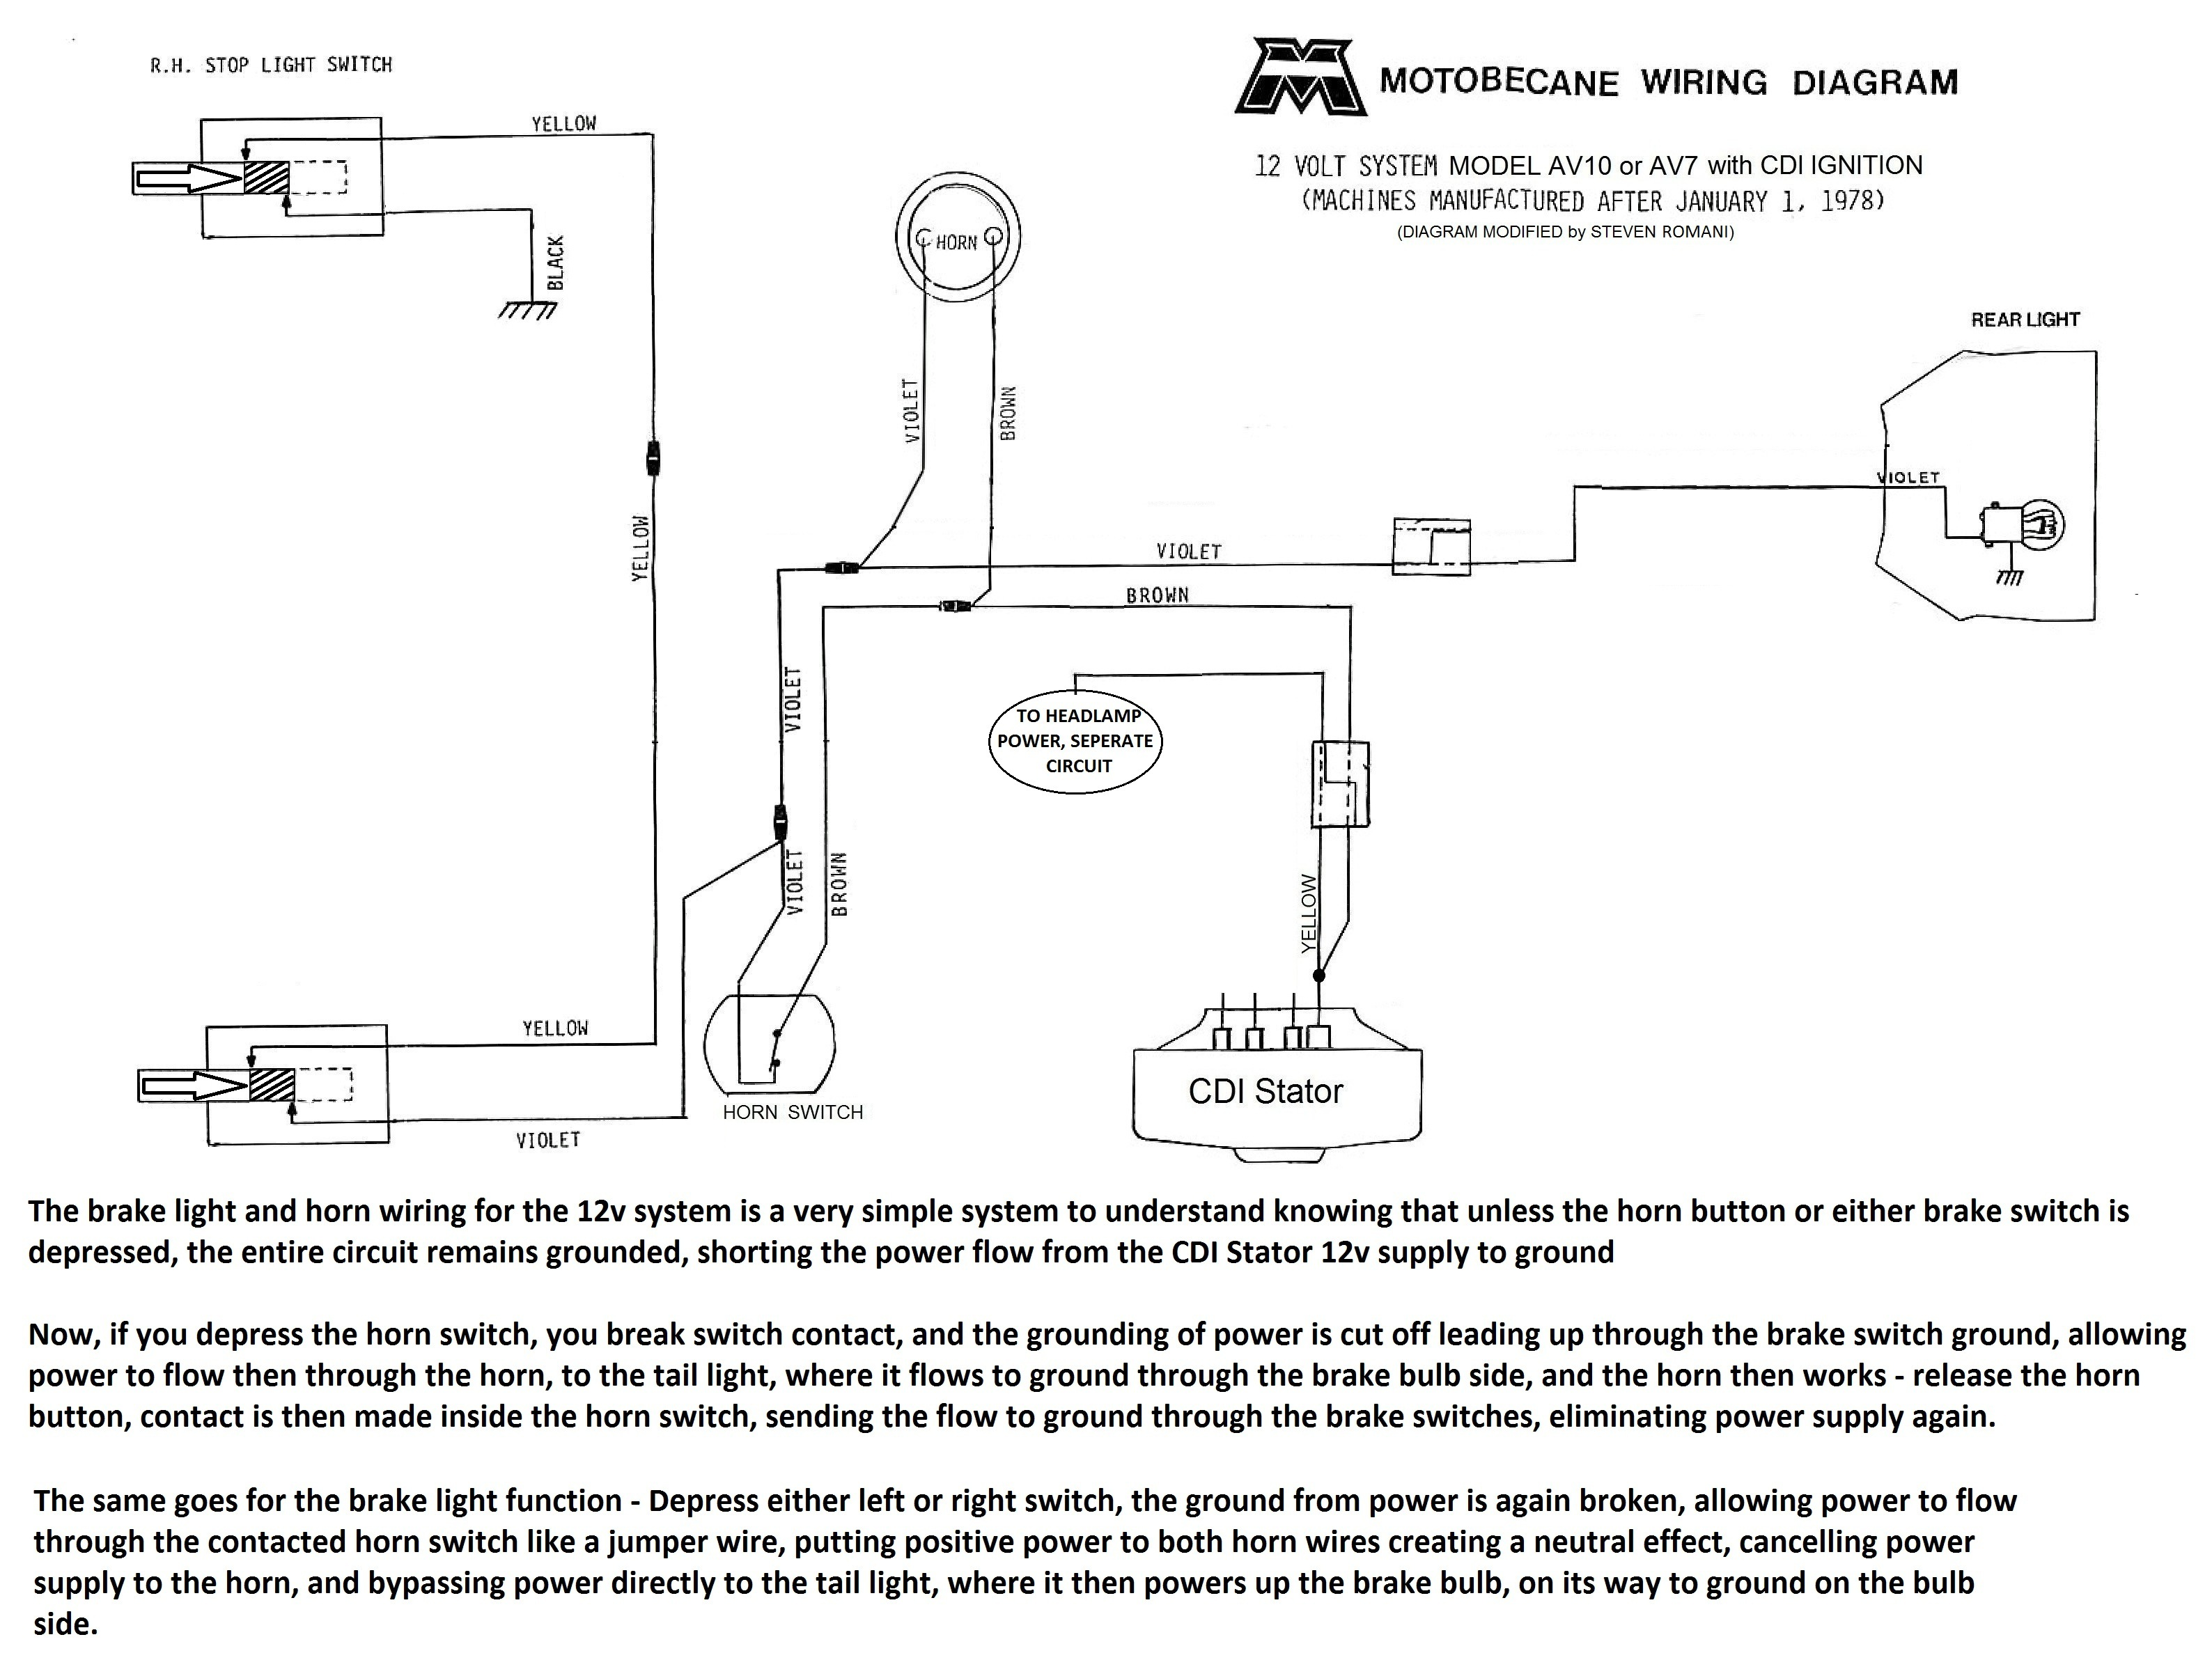 Motobecane V Cdi Wiring Diagram Av Secondary Power on brake light wiring diagram